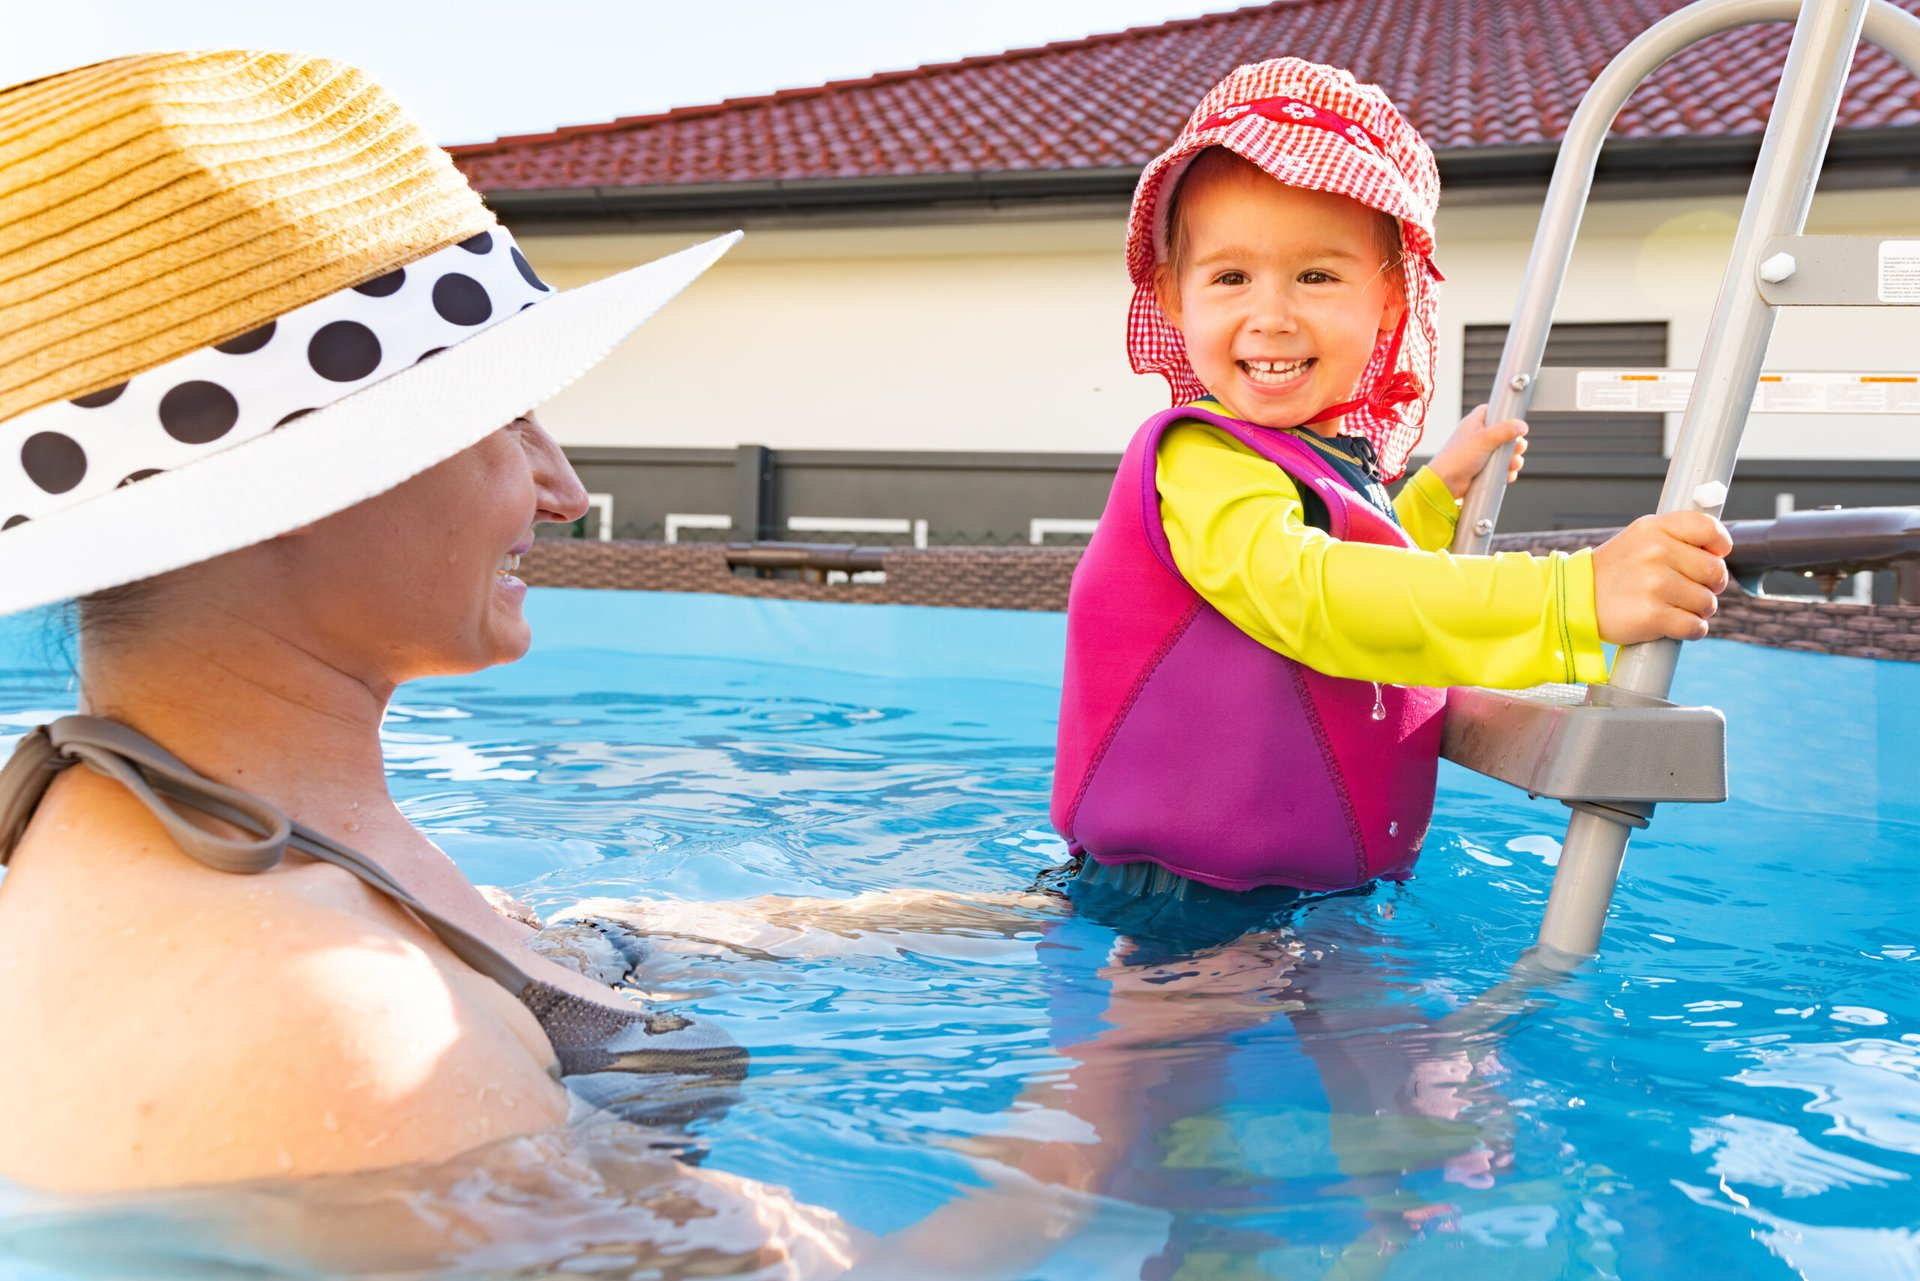 Mother and child in backyard pool